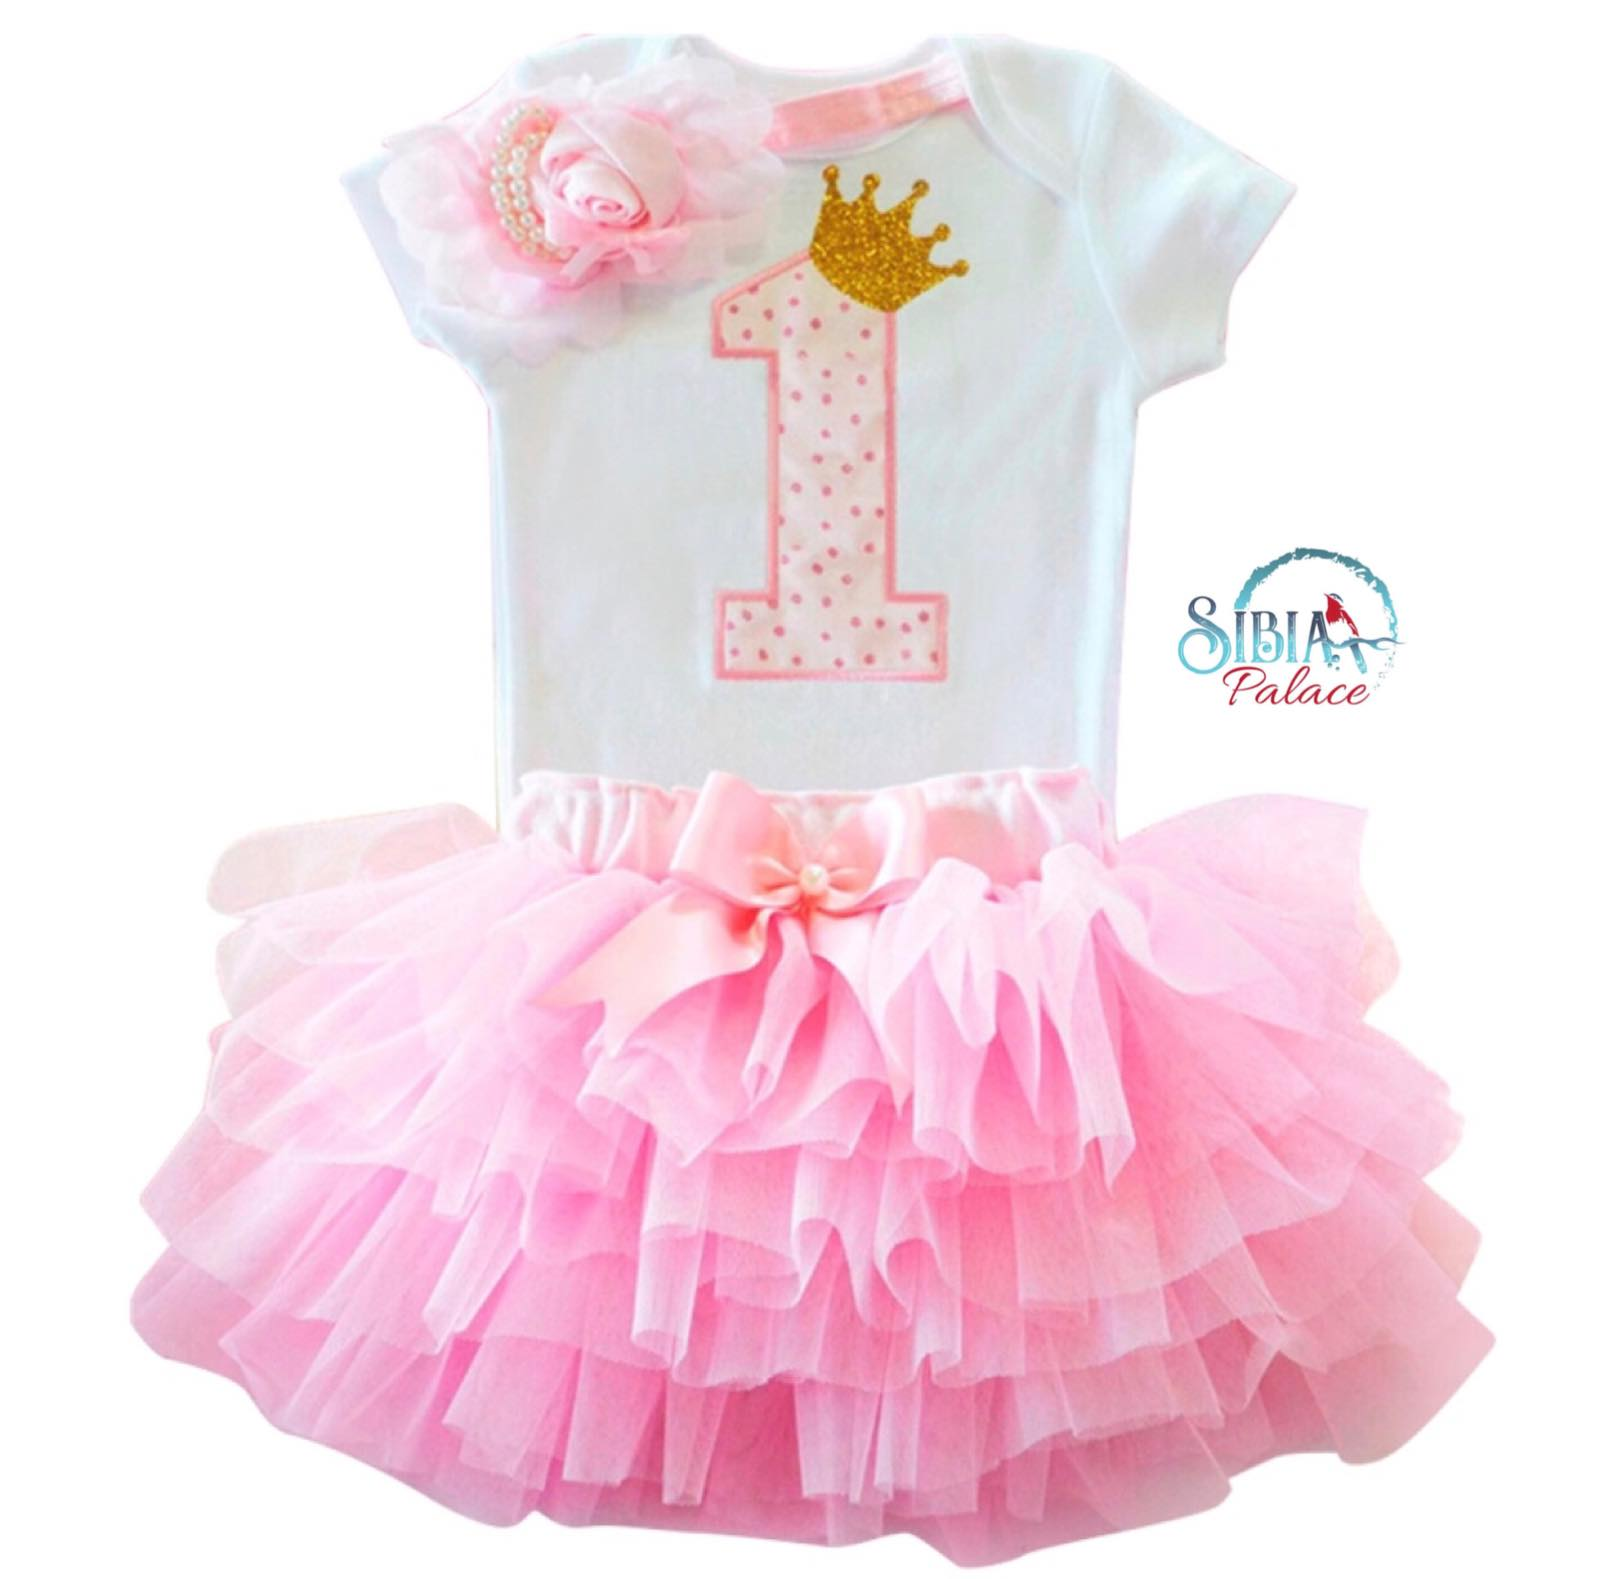 Sibia Palace Baby Girl 1st Birthday Princess Theme Pink Glitter Outfit